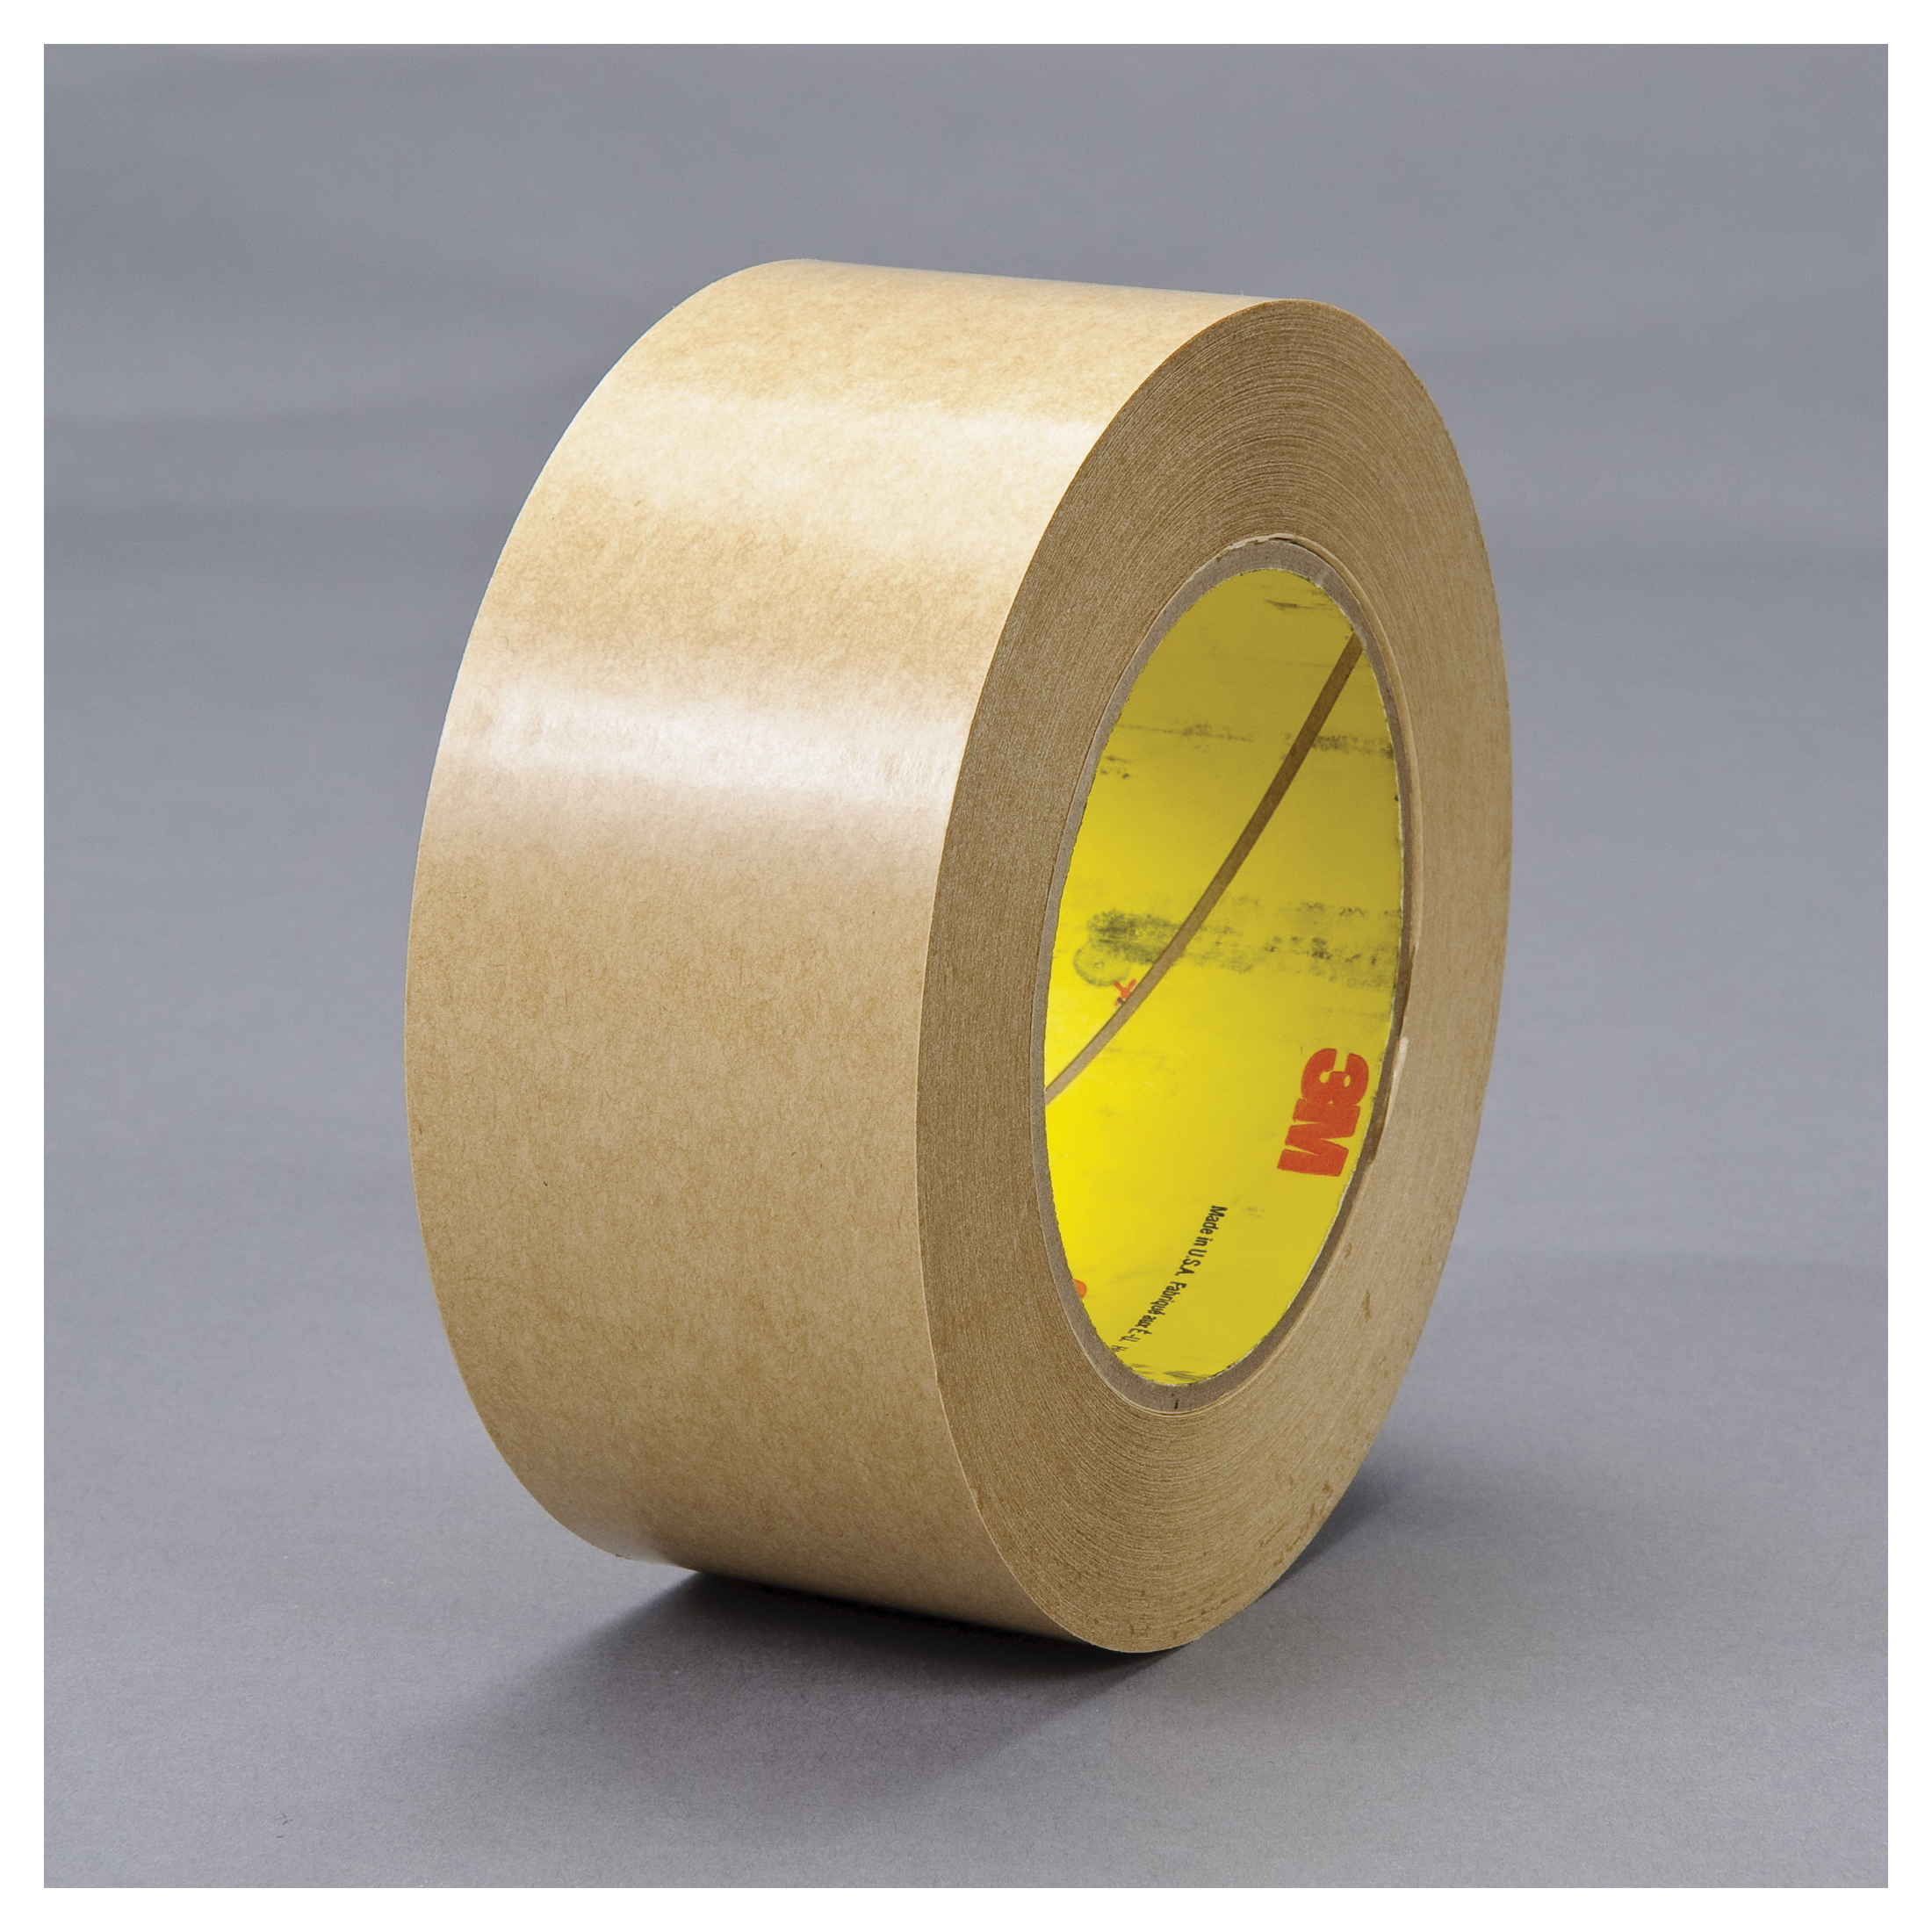 3M™ 021200-03334 Fibered General Purpose Adhesive Transfer Tape, 60 yd L x 3/8 in W, 2 mil THK, 2 mil 400 Acrylic Adhesive, Clear